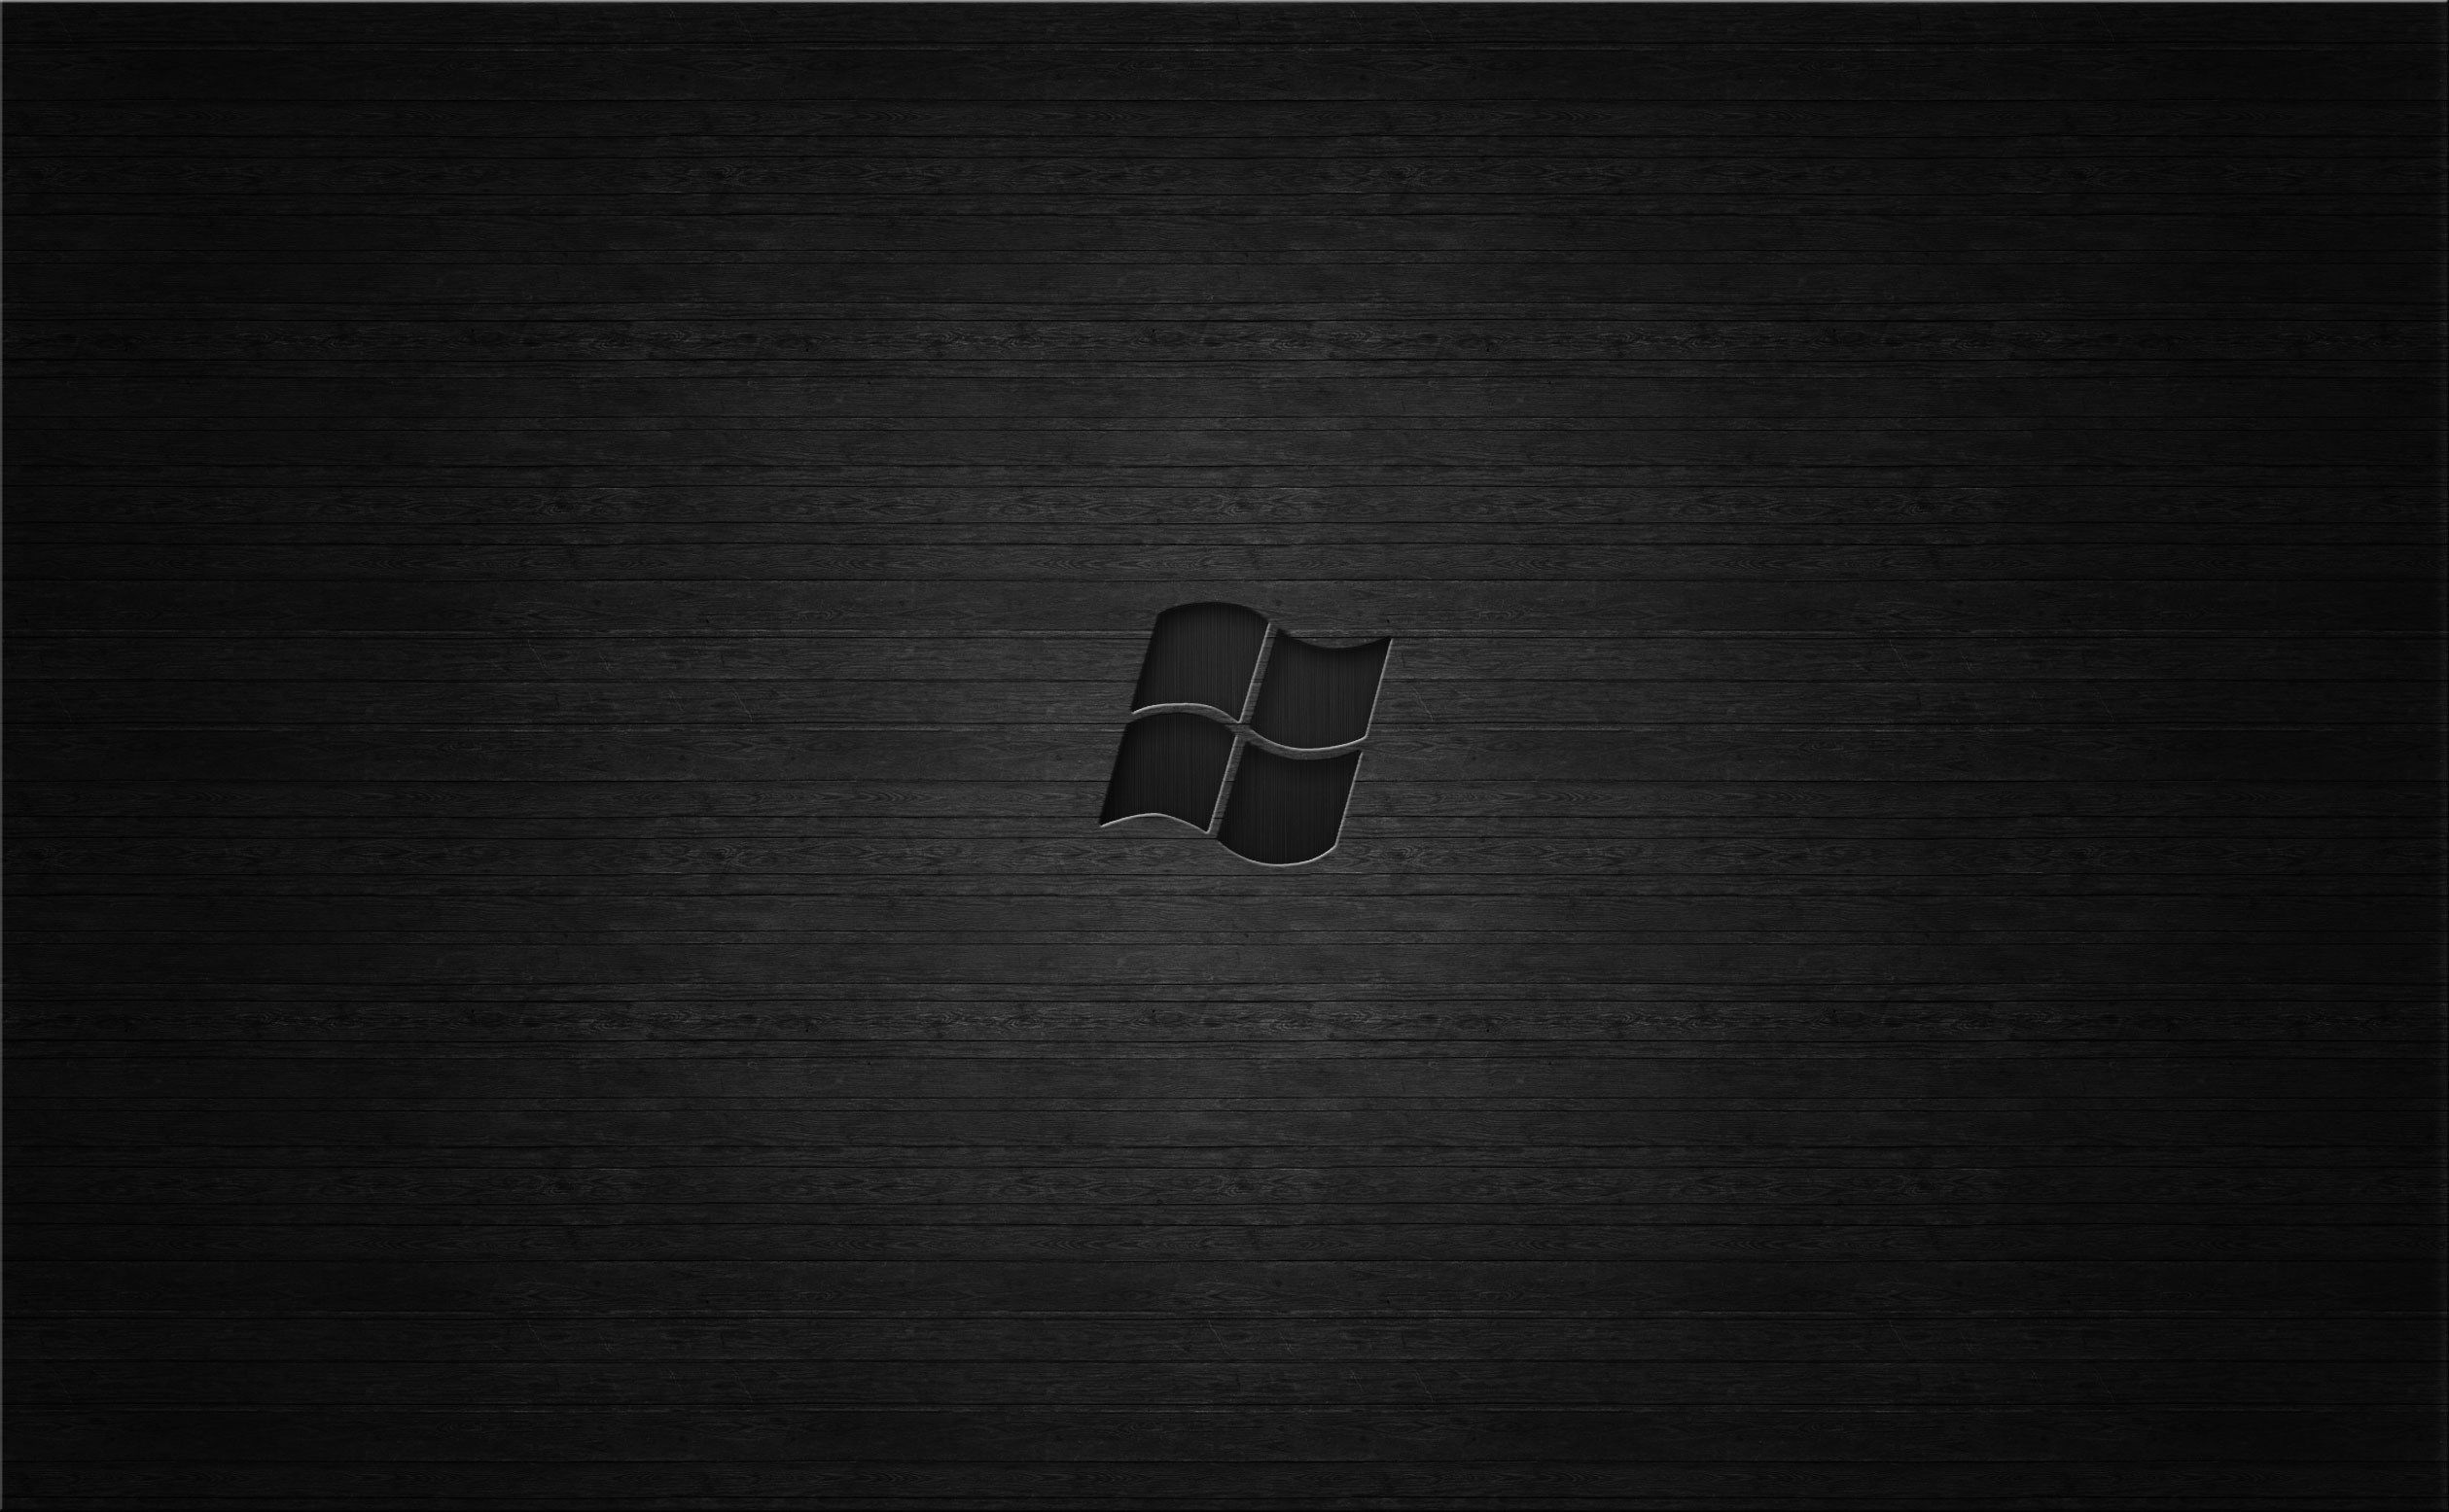 black wallpaper dark 1920x1080 | Minimalist desktop ...